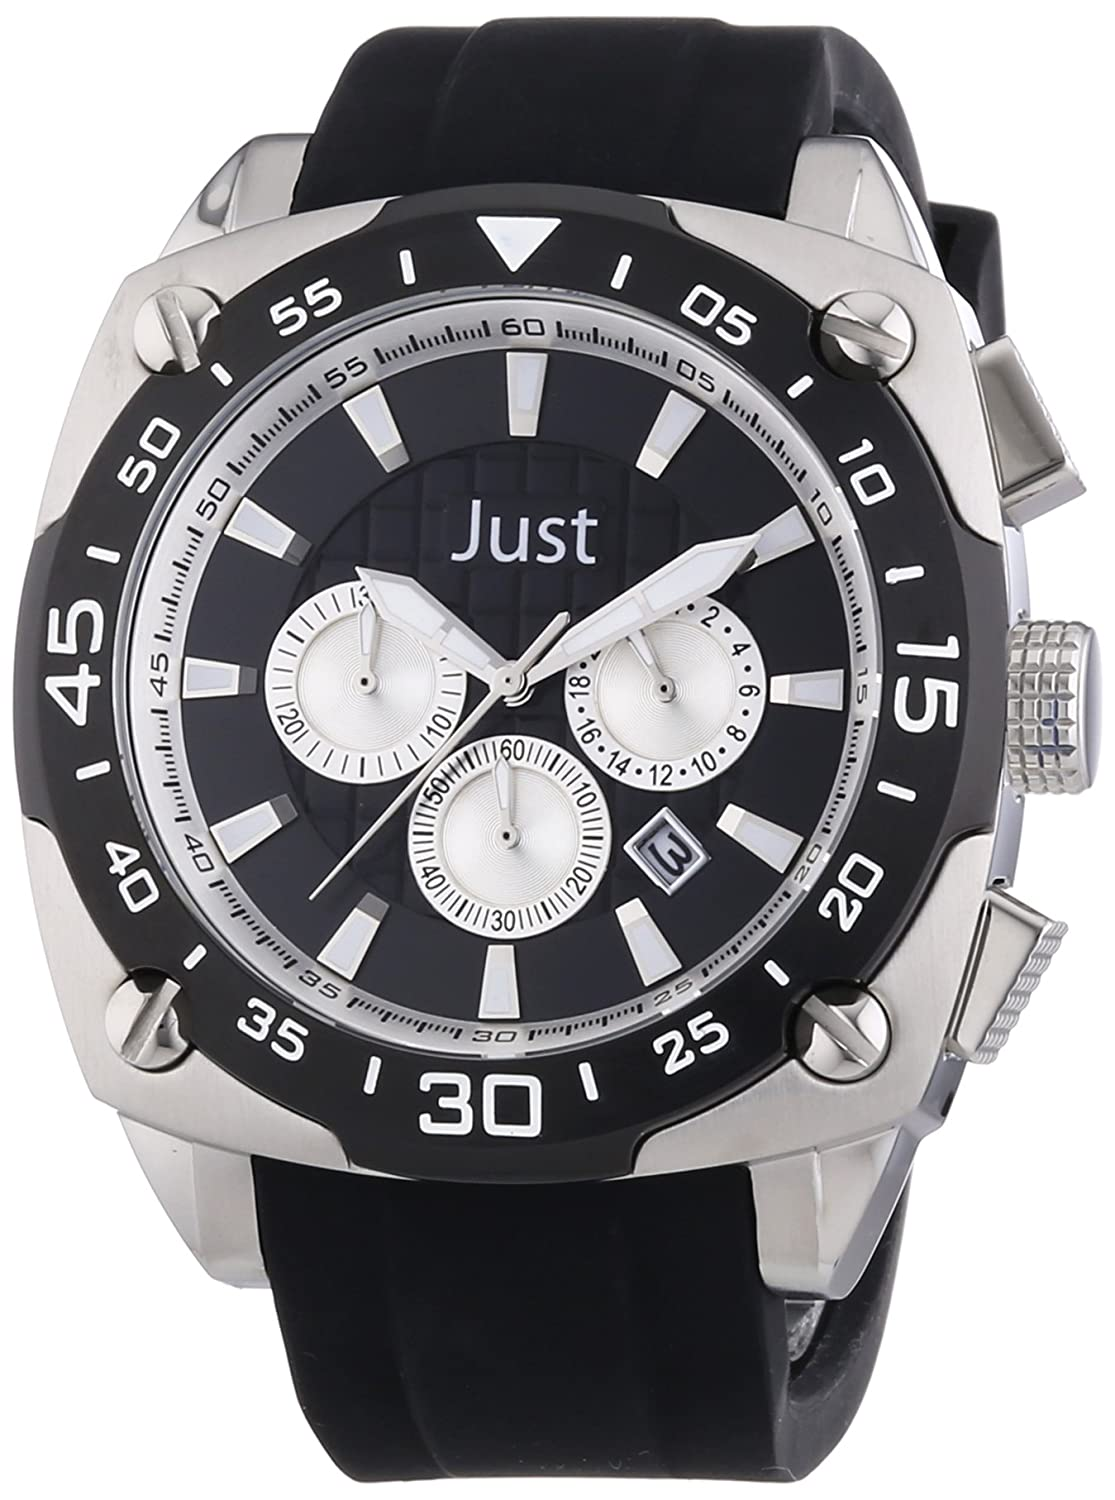 Just Watches Herren-Armbanduhr XL Analog Quarz Kautschuk 48-STG2373-BK